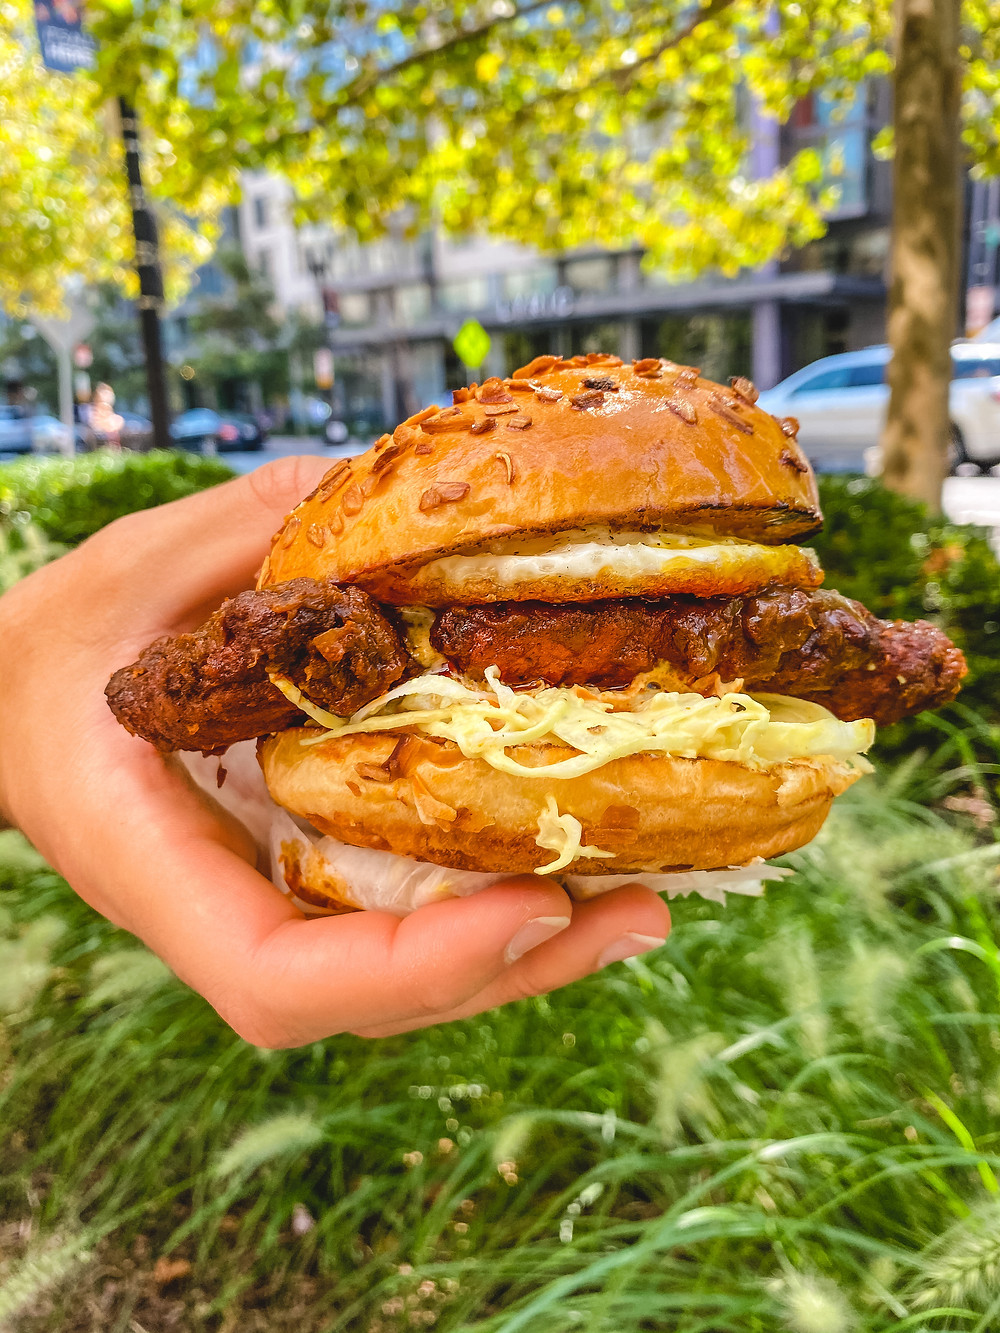 hand holding a fried chicken sandwich dipped in doro wat-style sauce in front of a grassy background